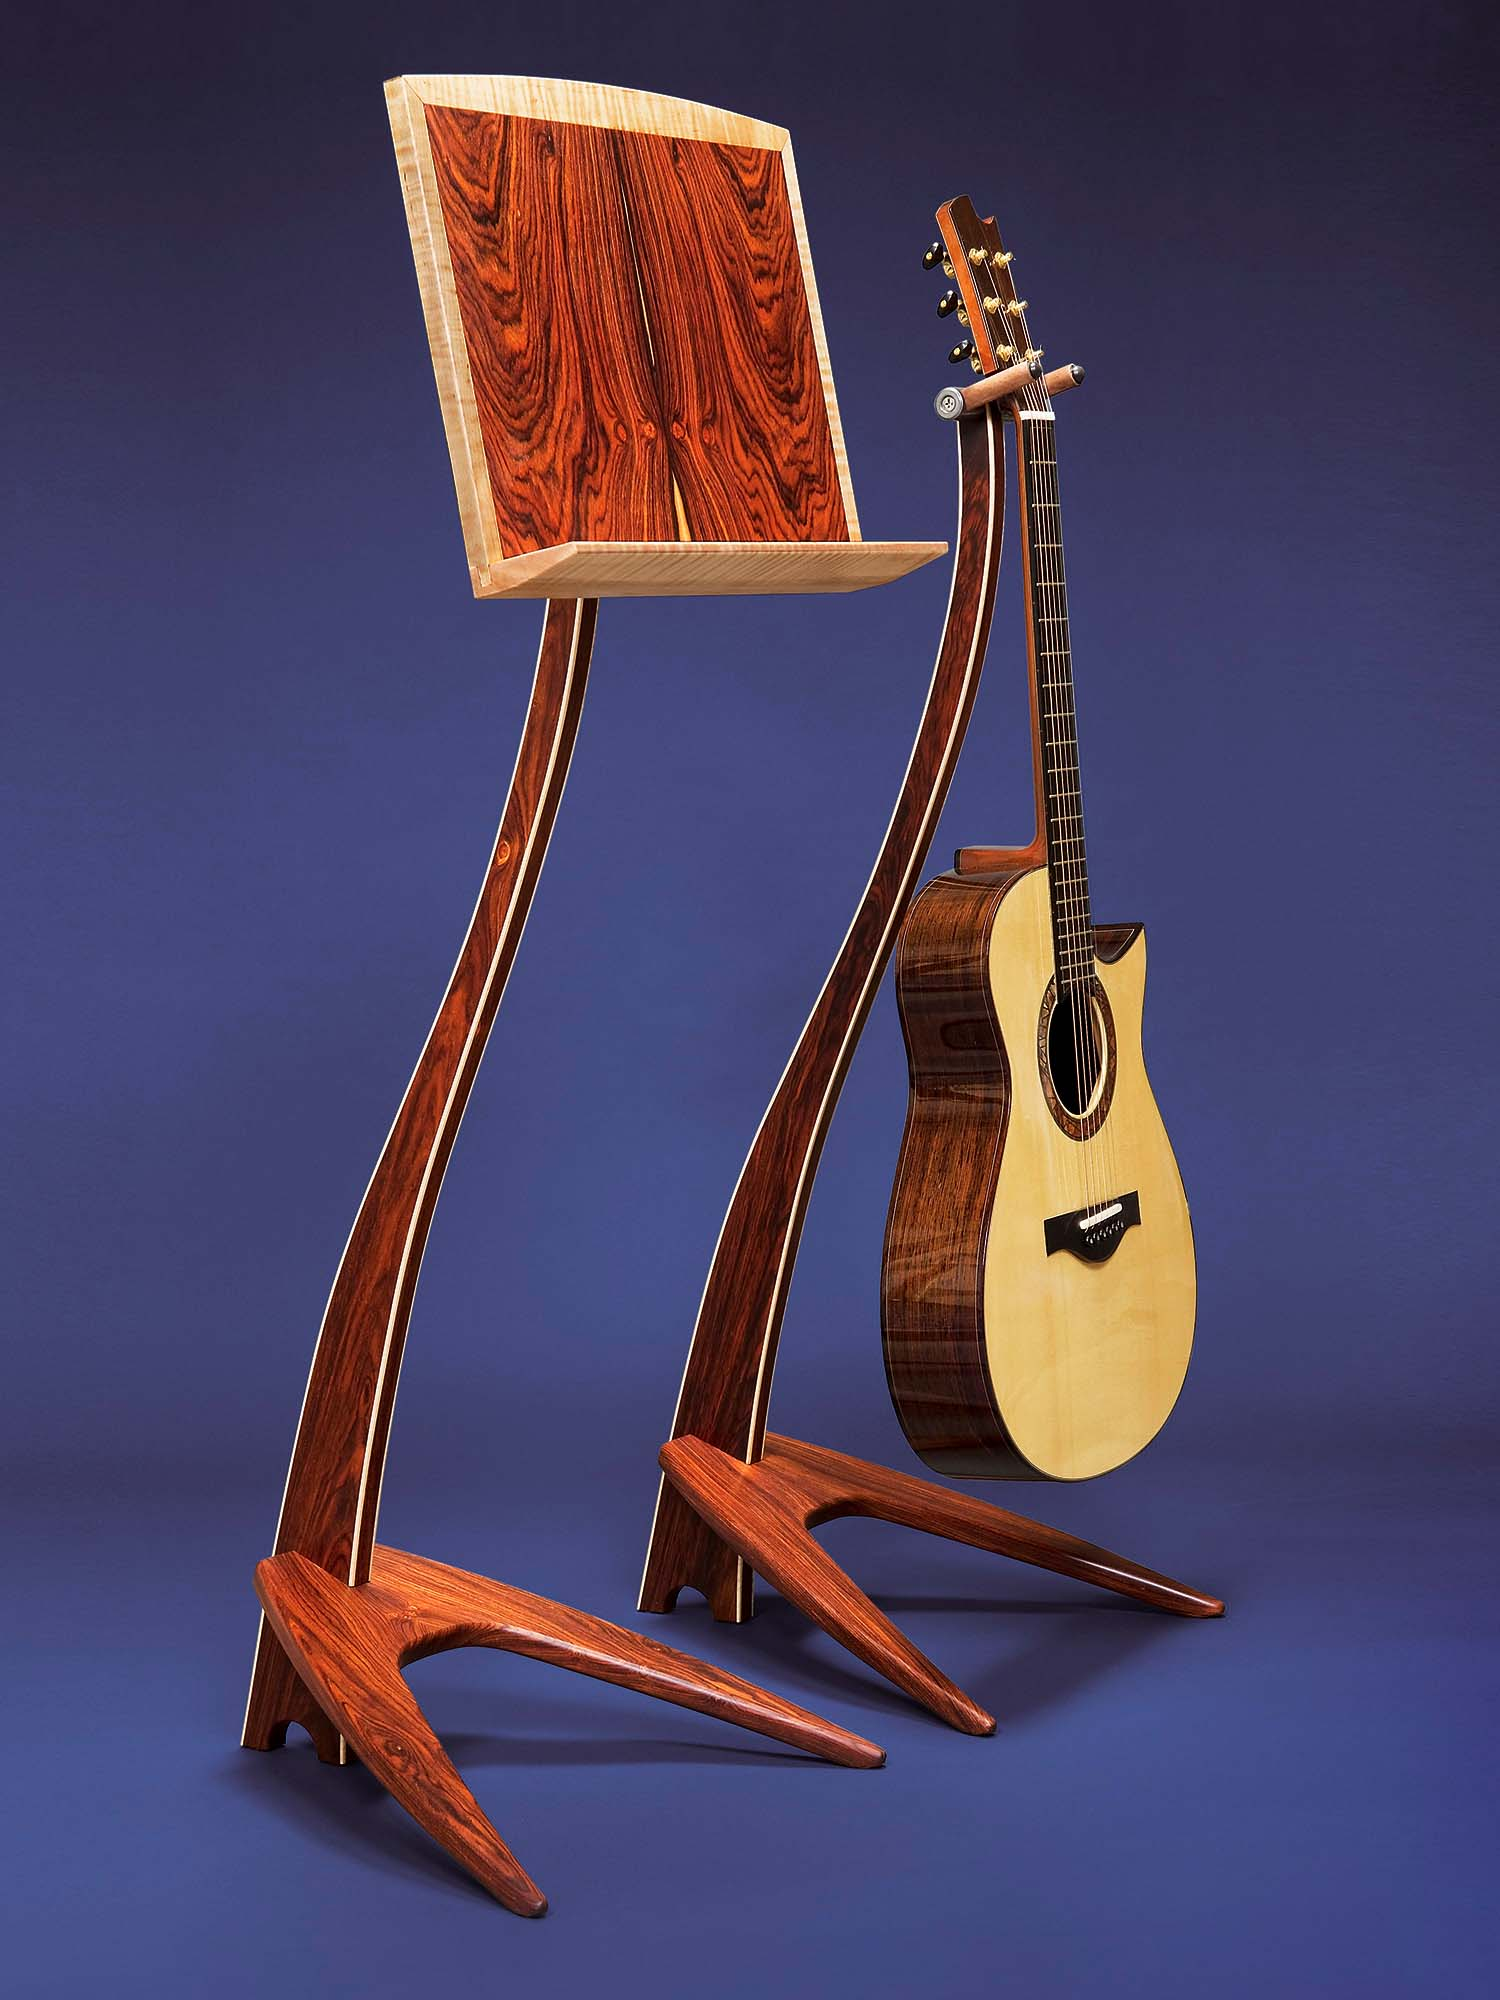 WM Cocobolo Music and Guitar Stands